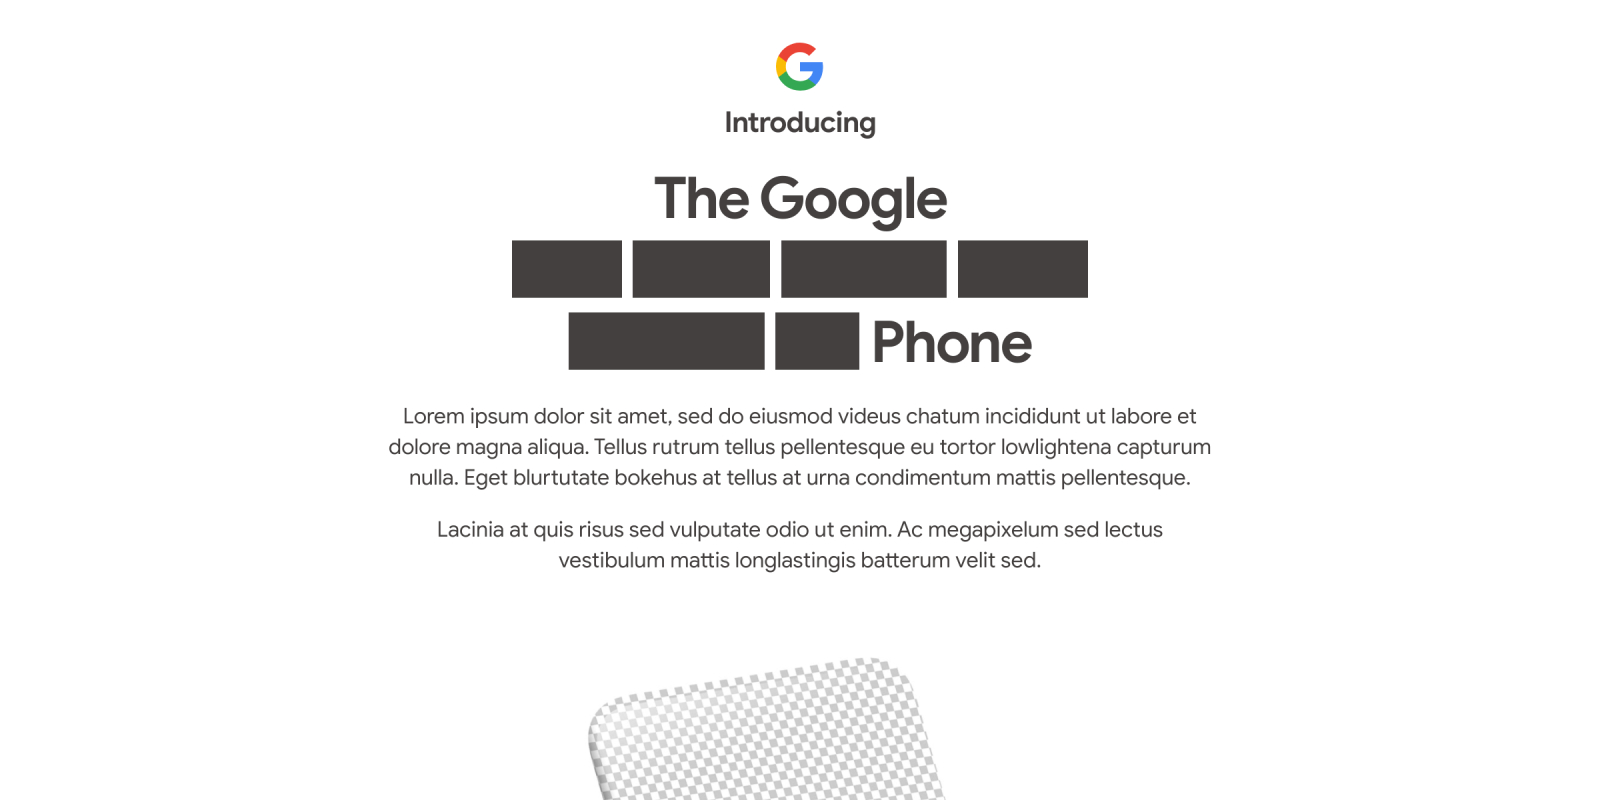 Google teases Pixel 4a unveil on August 3rd with 'lorem ipsum'